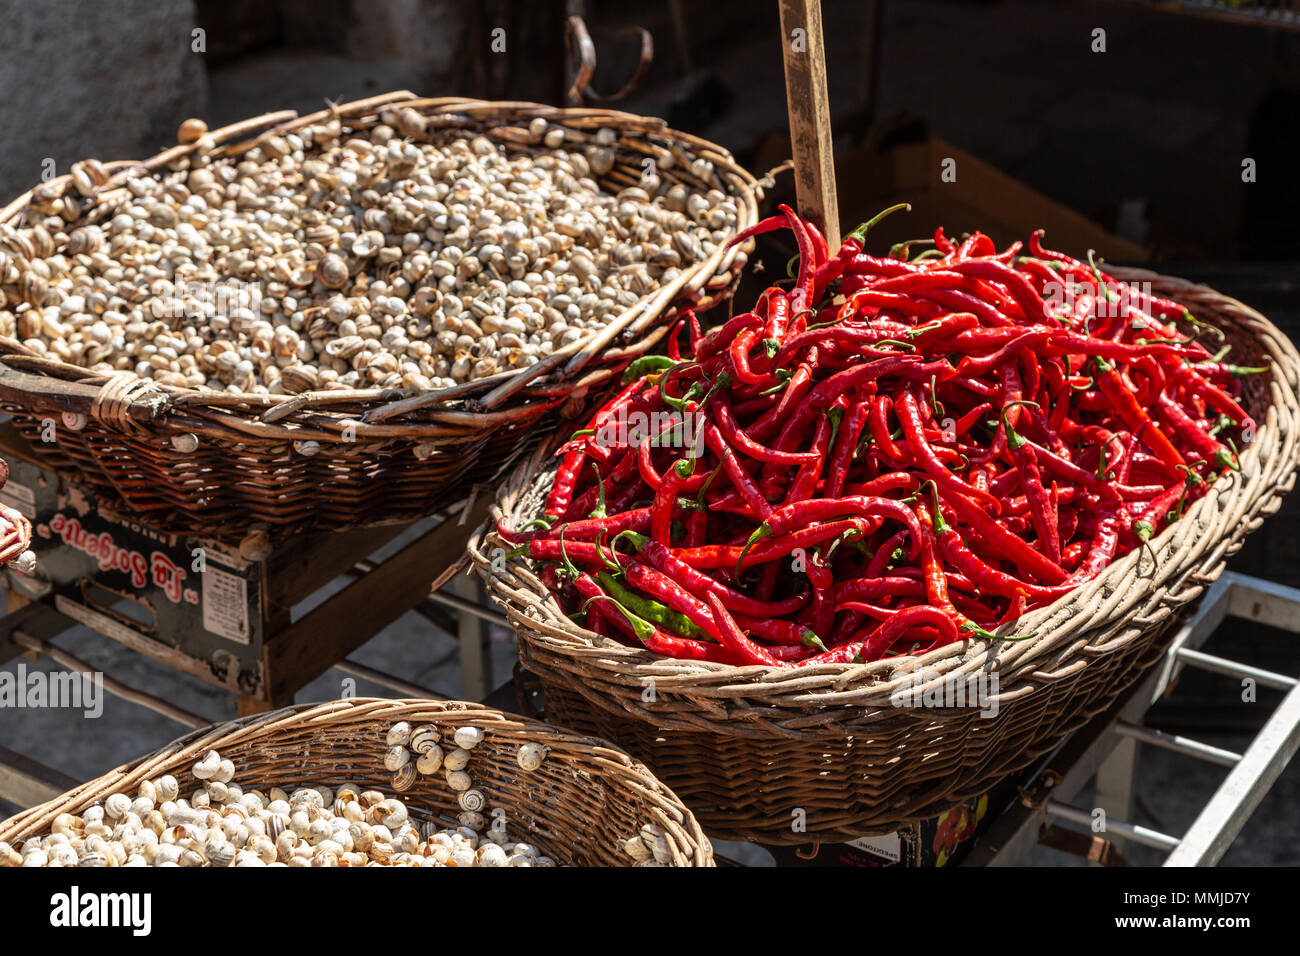 Snails and chili pepper at market stall, Palermo, Sicily - Stock Image